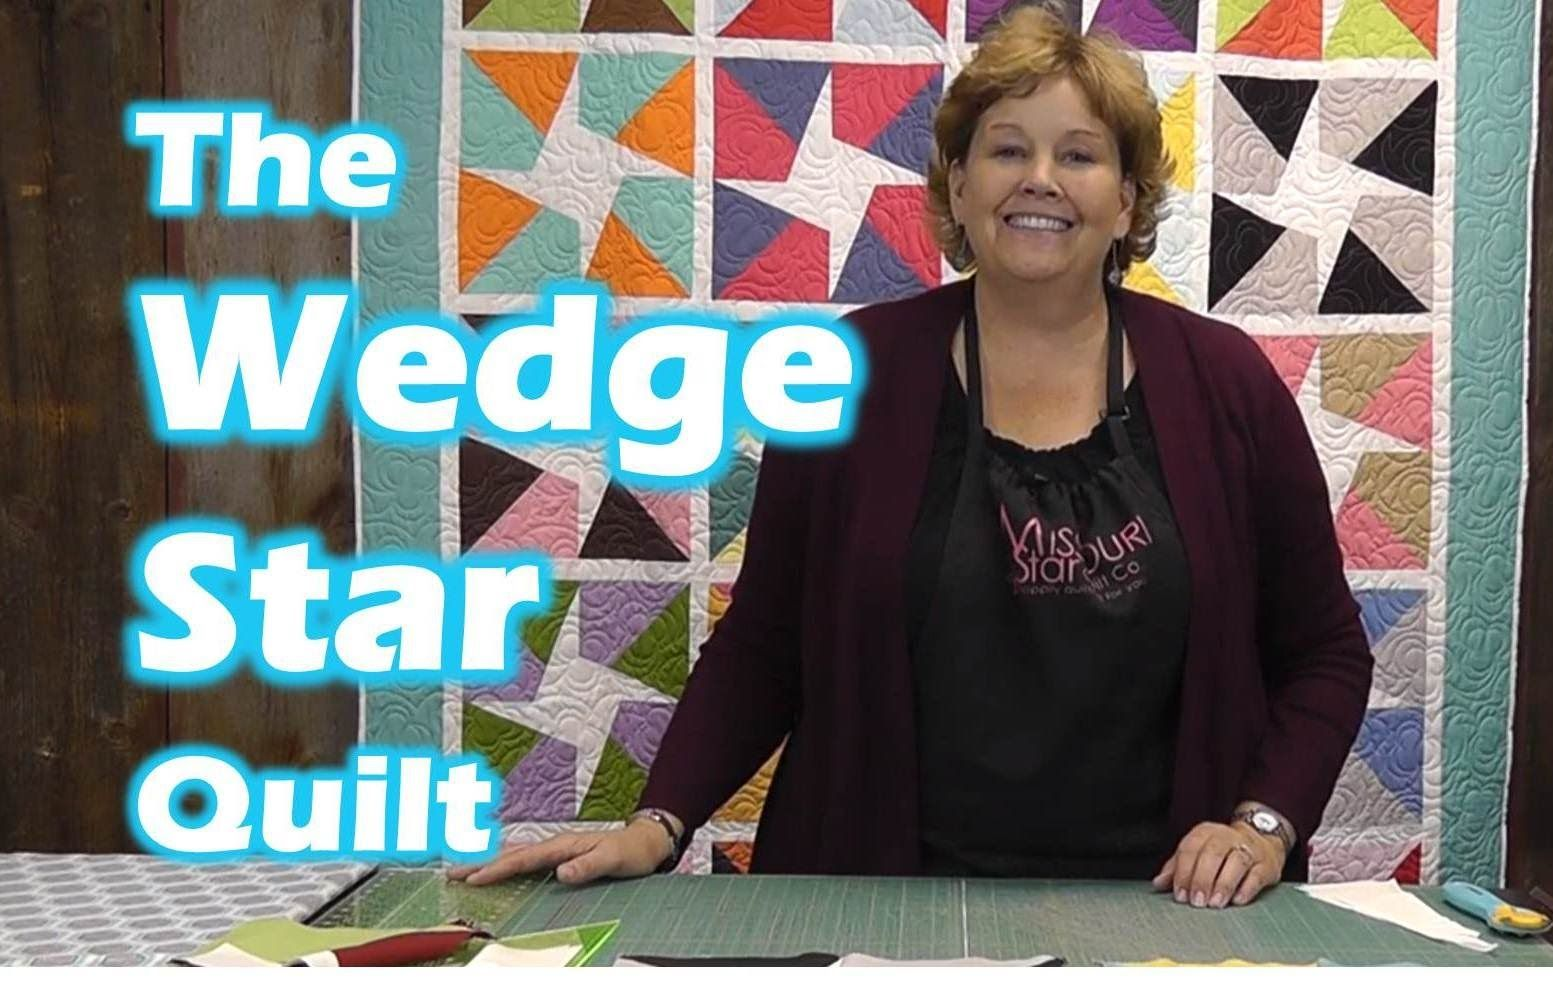 How to make the Wedge Star Quilt - 1 colored layer cake & 1 white one.